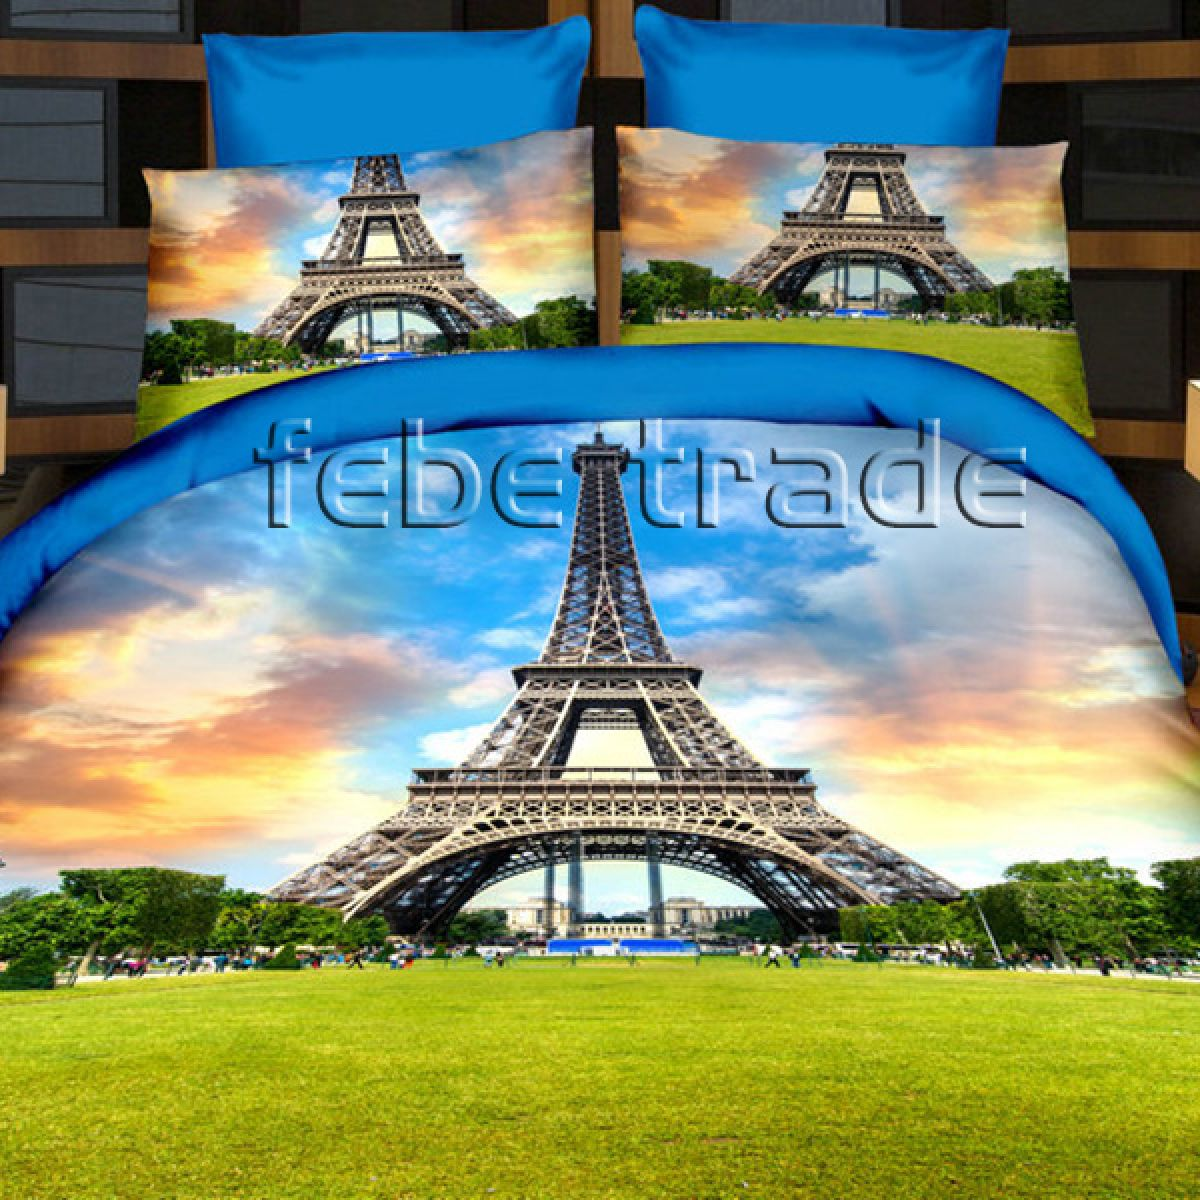 3D Beddings - Cotton World - FSH-165 - 220x200 cm - 4 cz